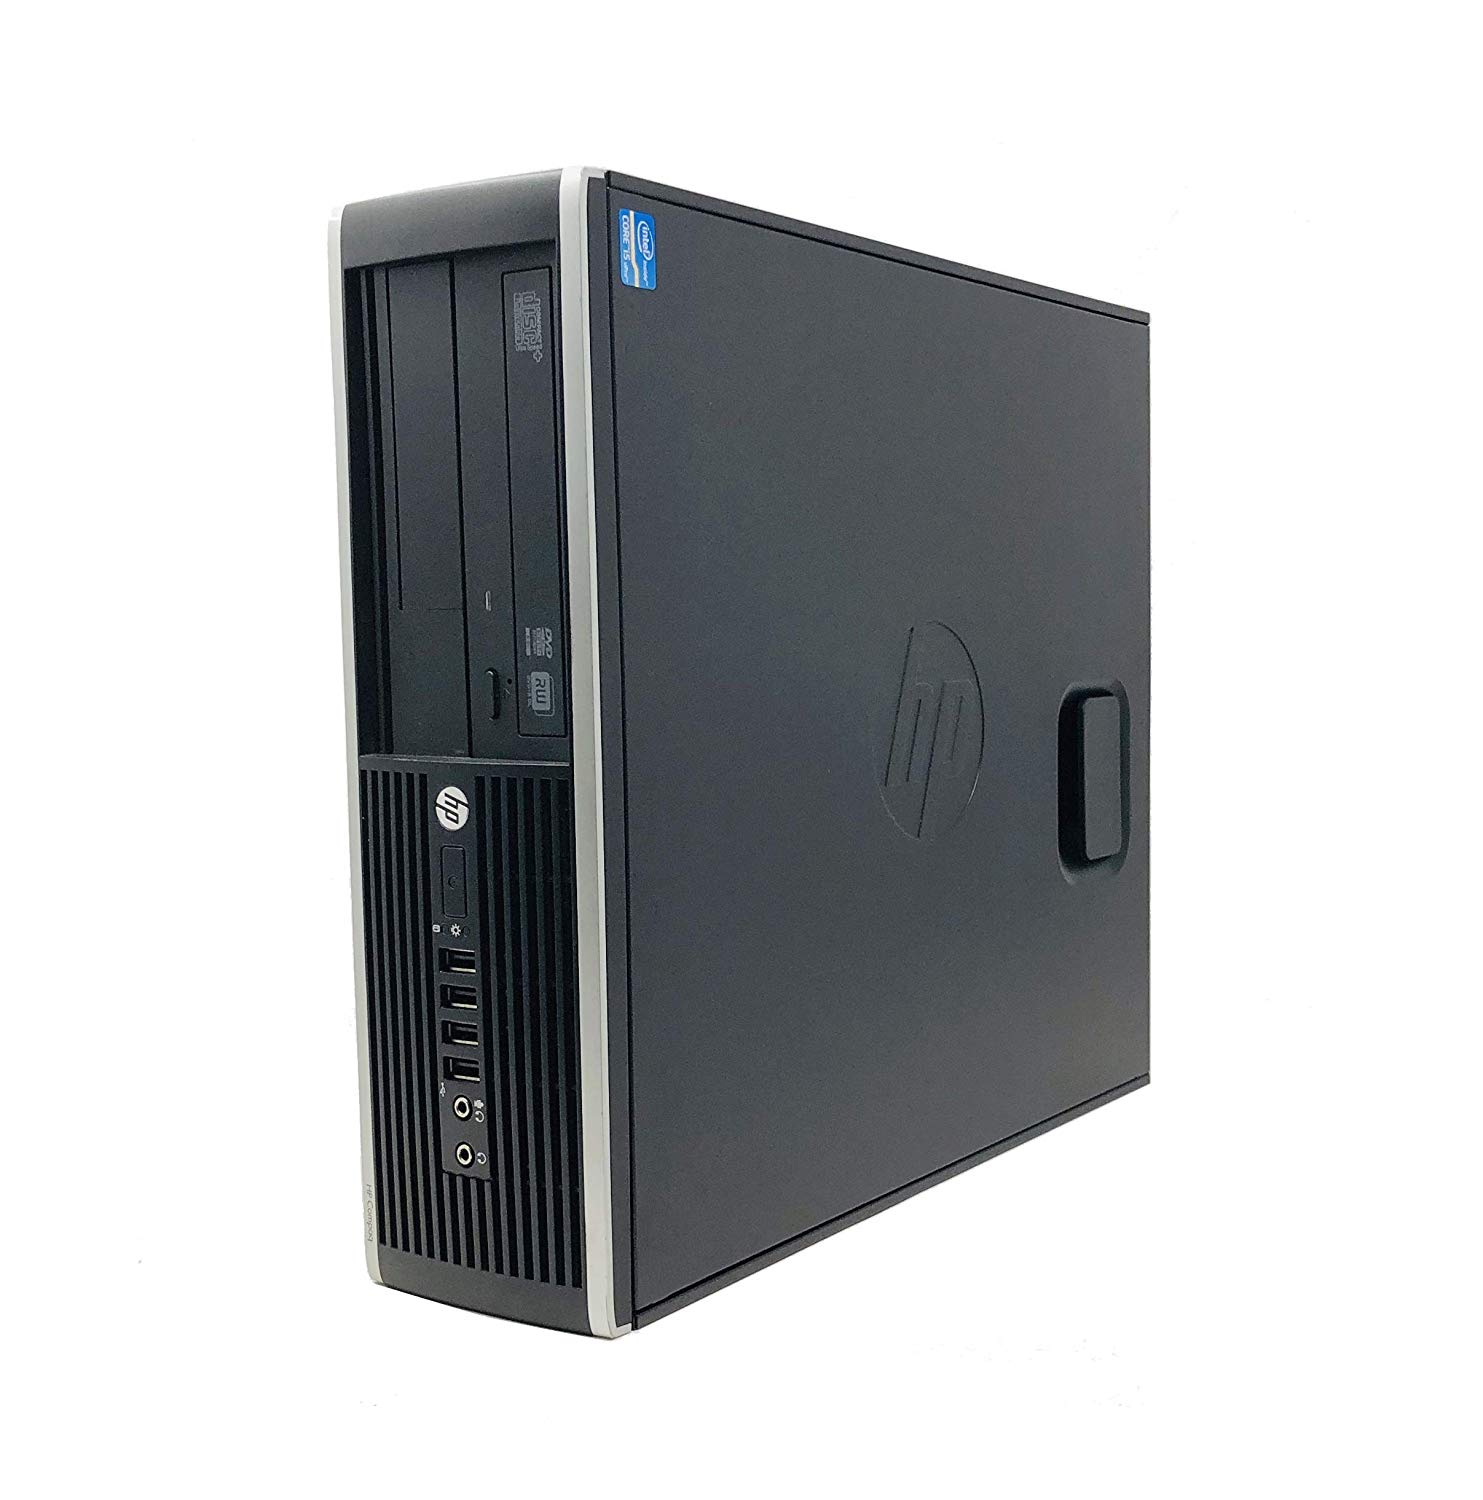 Hp Elite 8200 - Ordenador de sobremesa (<font><b>Intel</b></font> <font><b>i5</b></font>-<font><b>2400</b></font>,Lector, 8GB de RAM, Disco SSD de 120GB , Windows 7 PRO ) - Negro (Reacondicionado) image